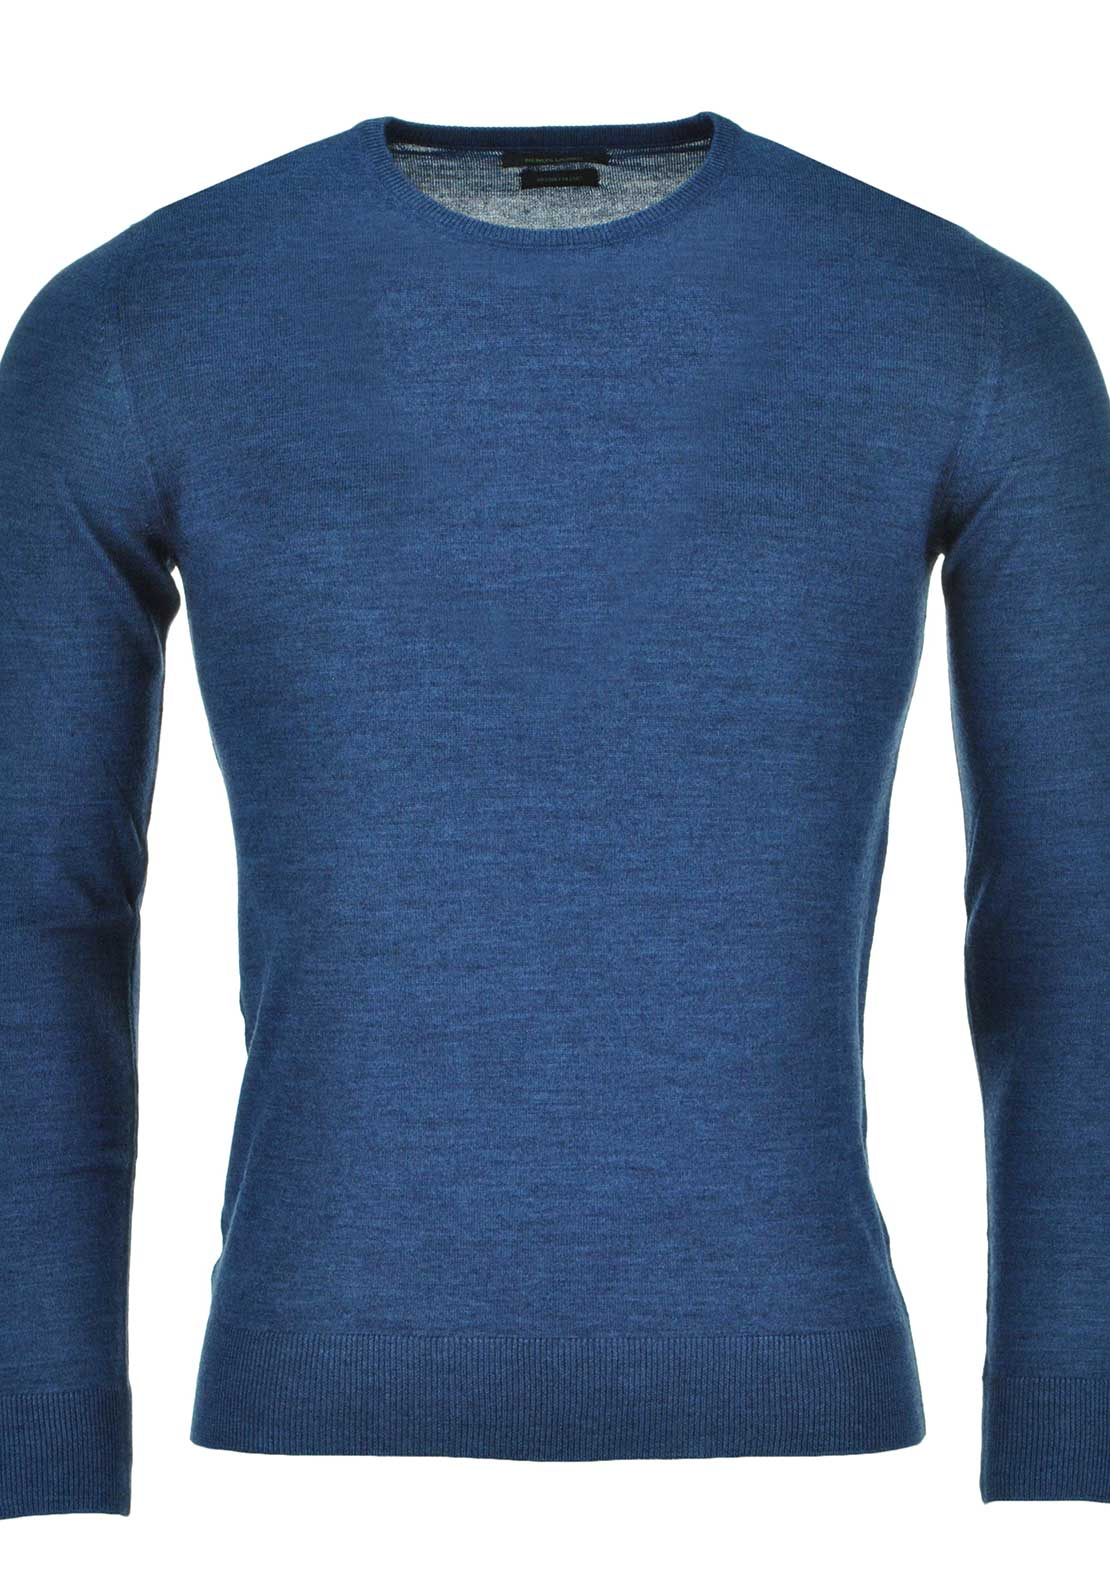 Remus Uomo Mens Long Sleeved Crew Neck Sweater, Blue